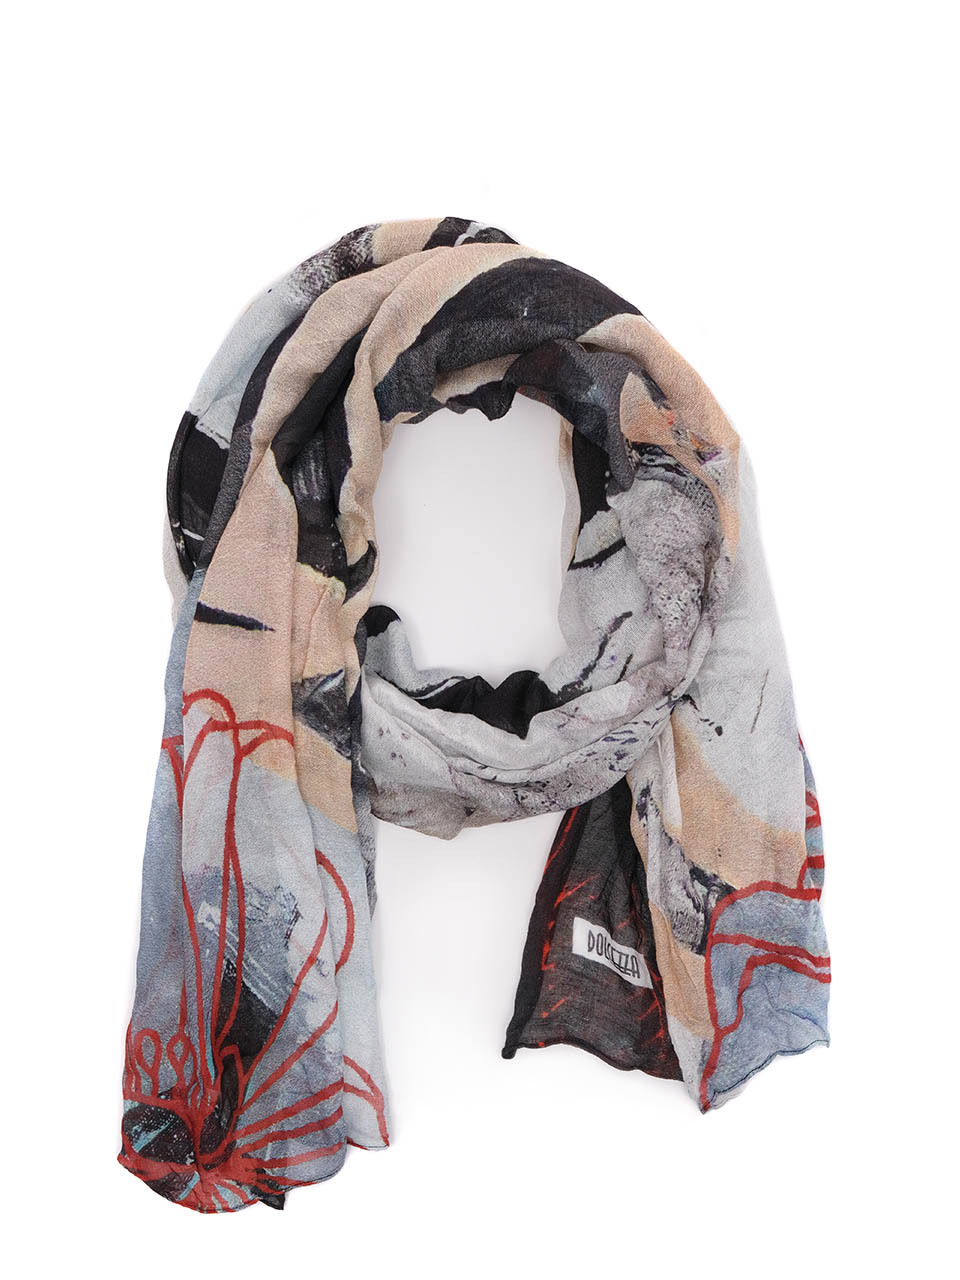 Simply Art Dolcezza: Silent Mood Abstract Art Scarf (1 Left!) Dolcezza_SimplyArt_71913